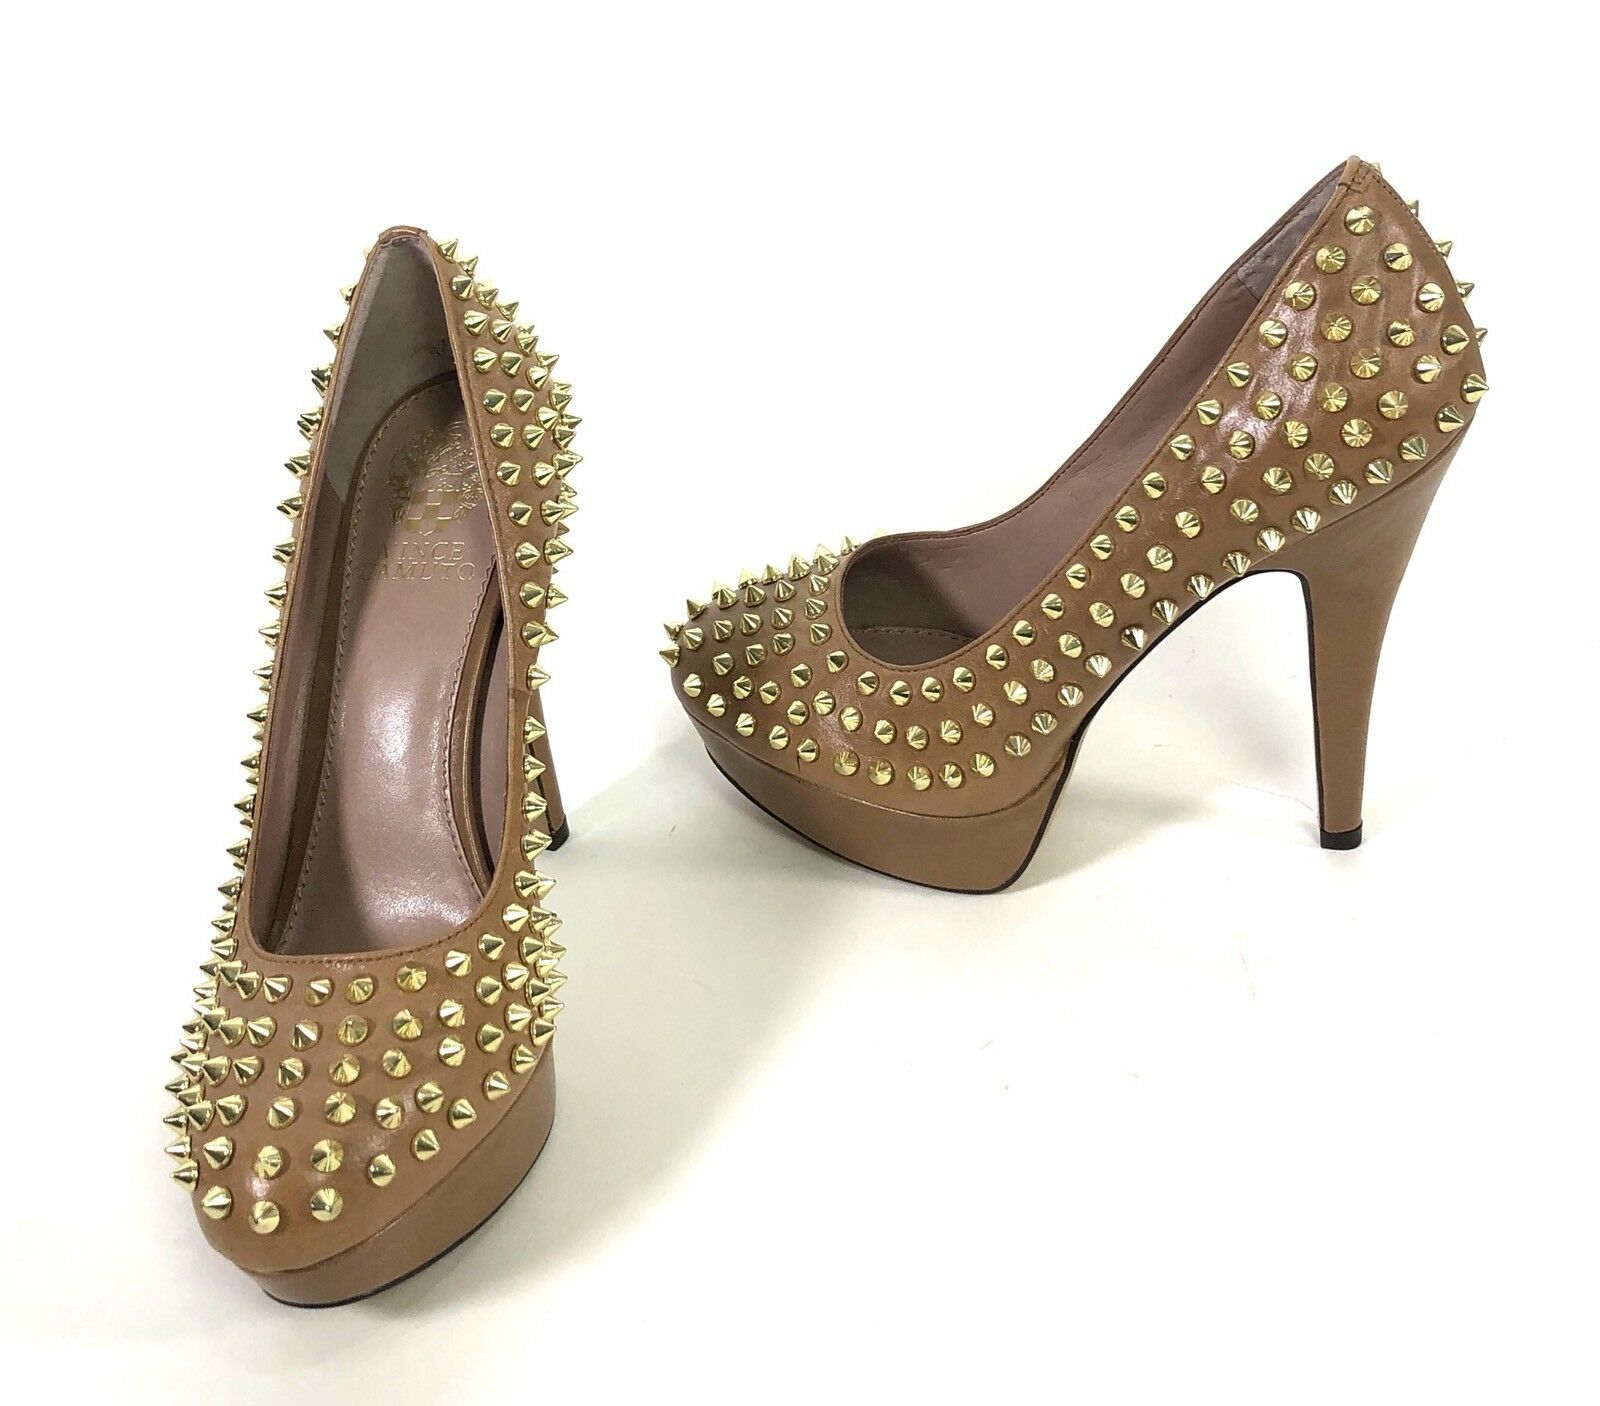 Vince Camuto MADELYN 7.5 Tan Spiked High Heel Platform Pumps Neiman Marcus FLAW